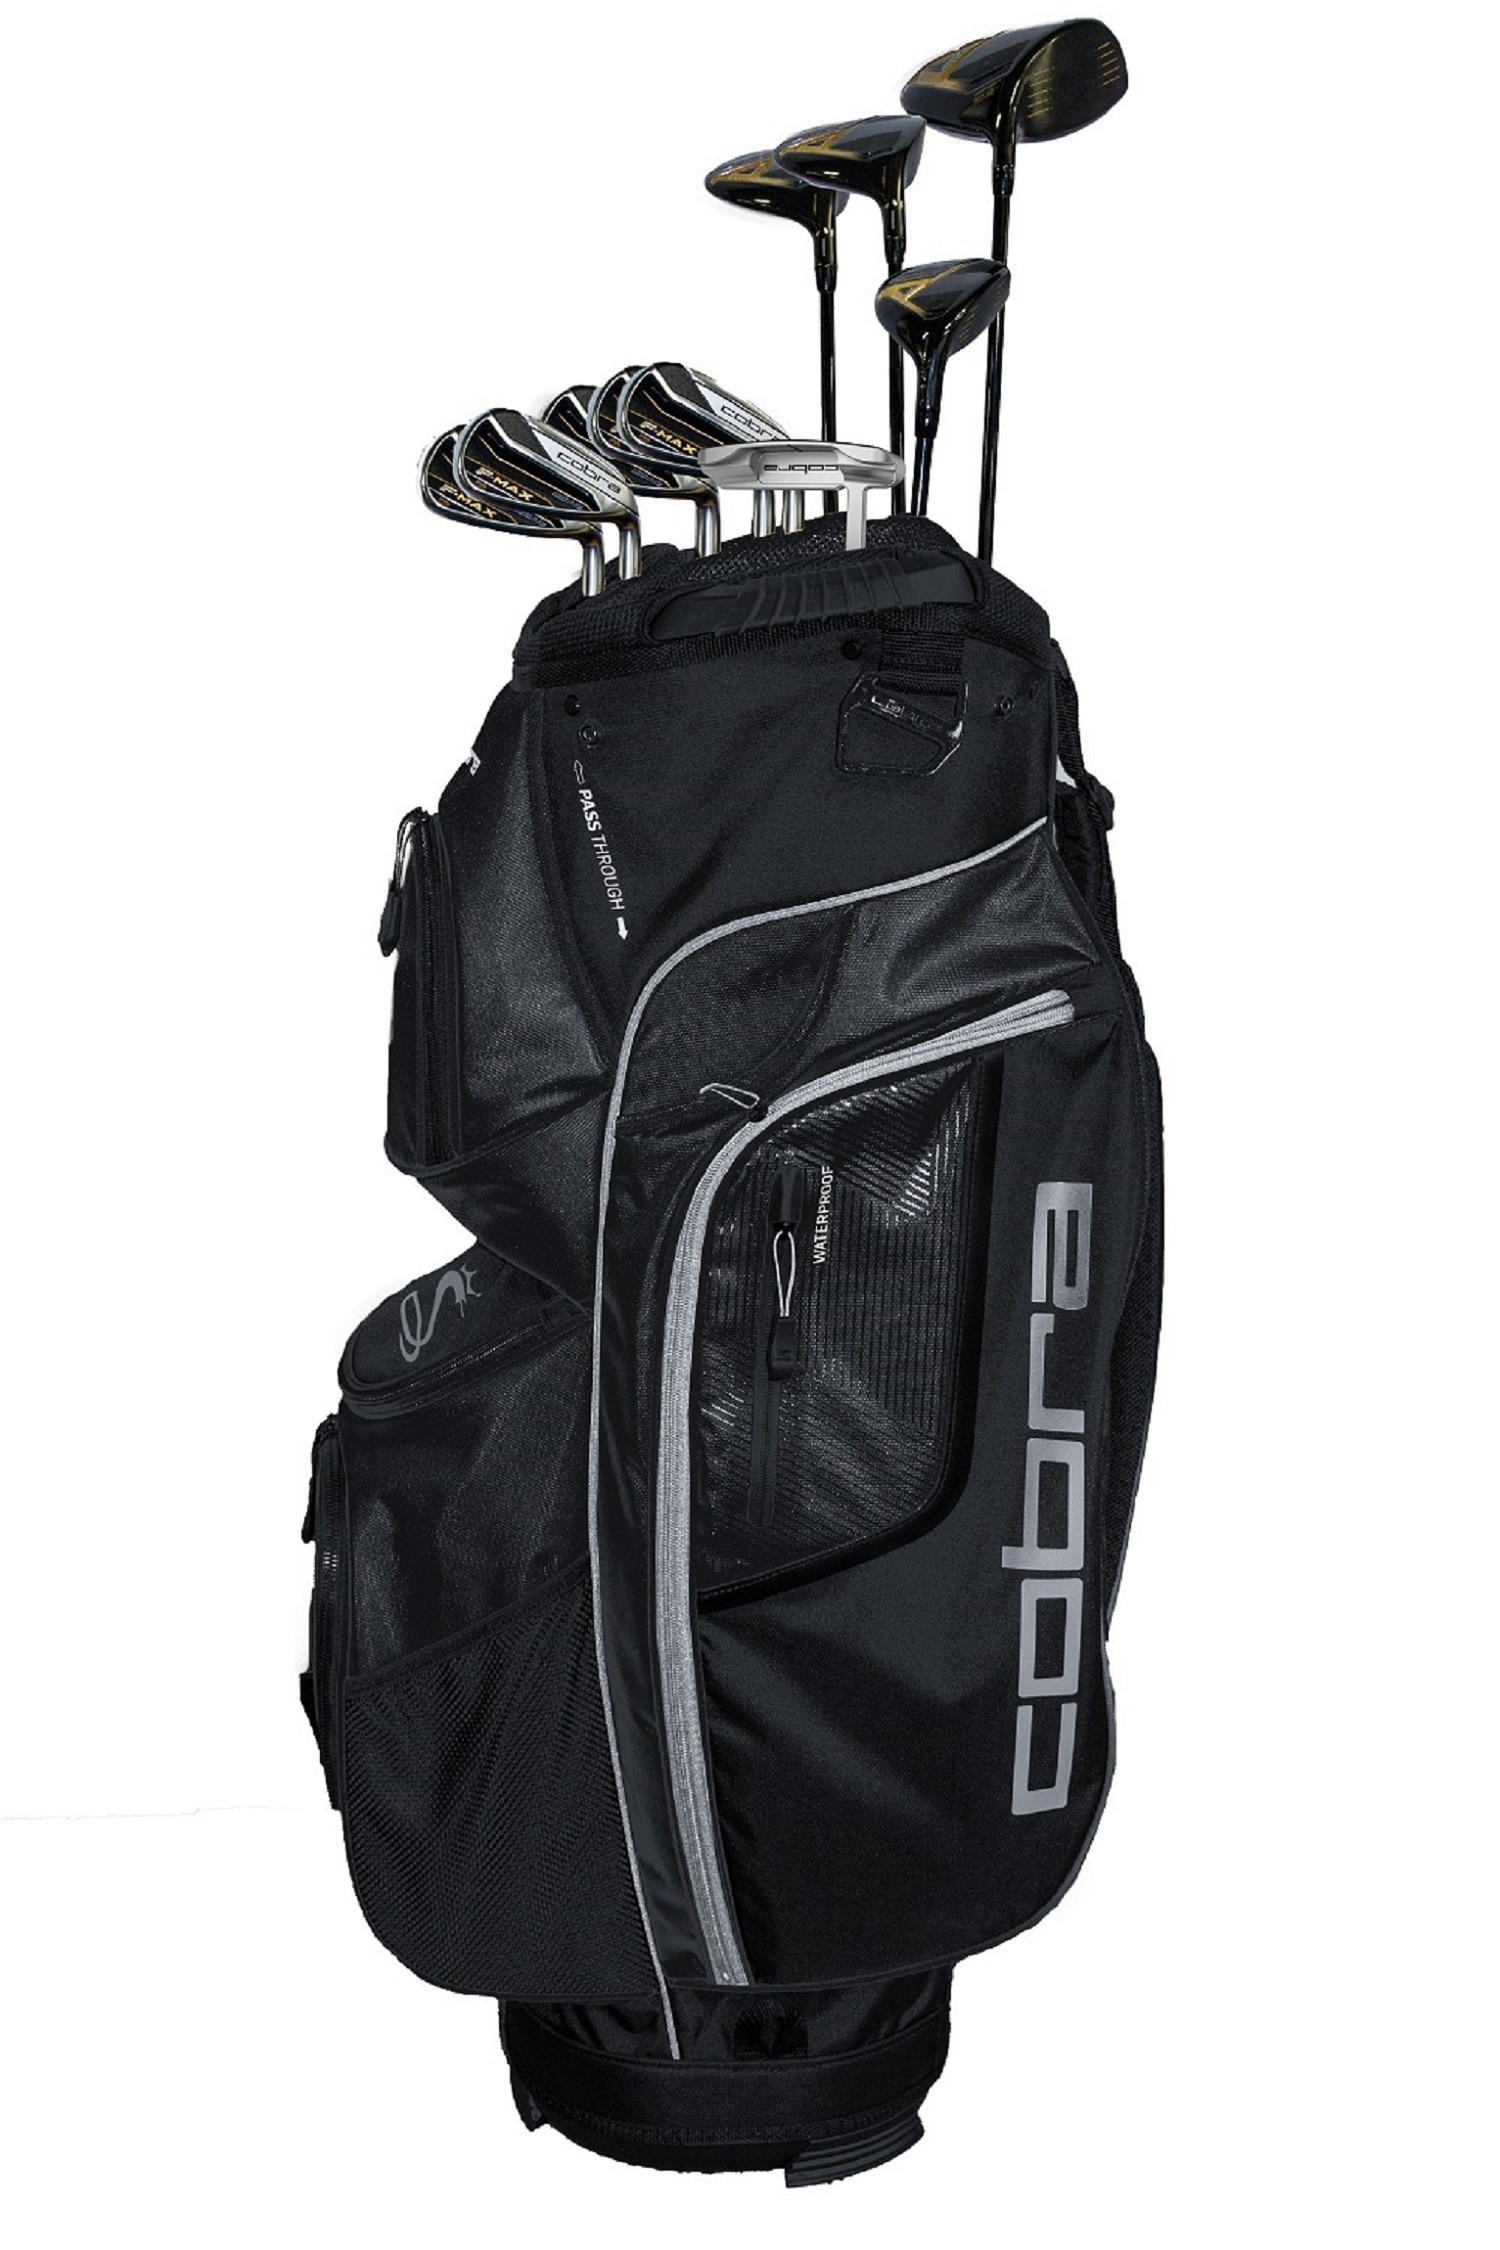 Cobra F-Max Complete Set Lite CS13 with Bag